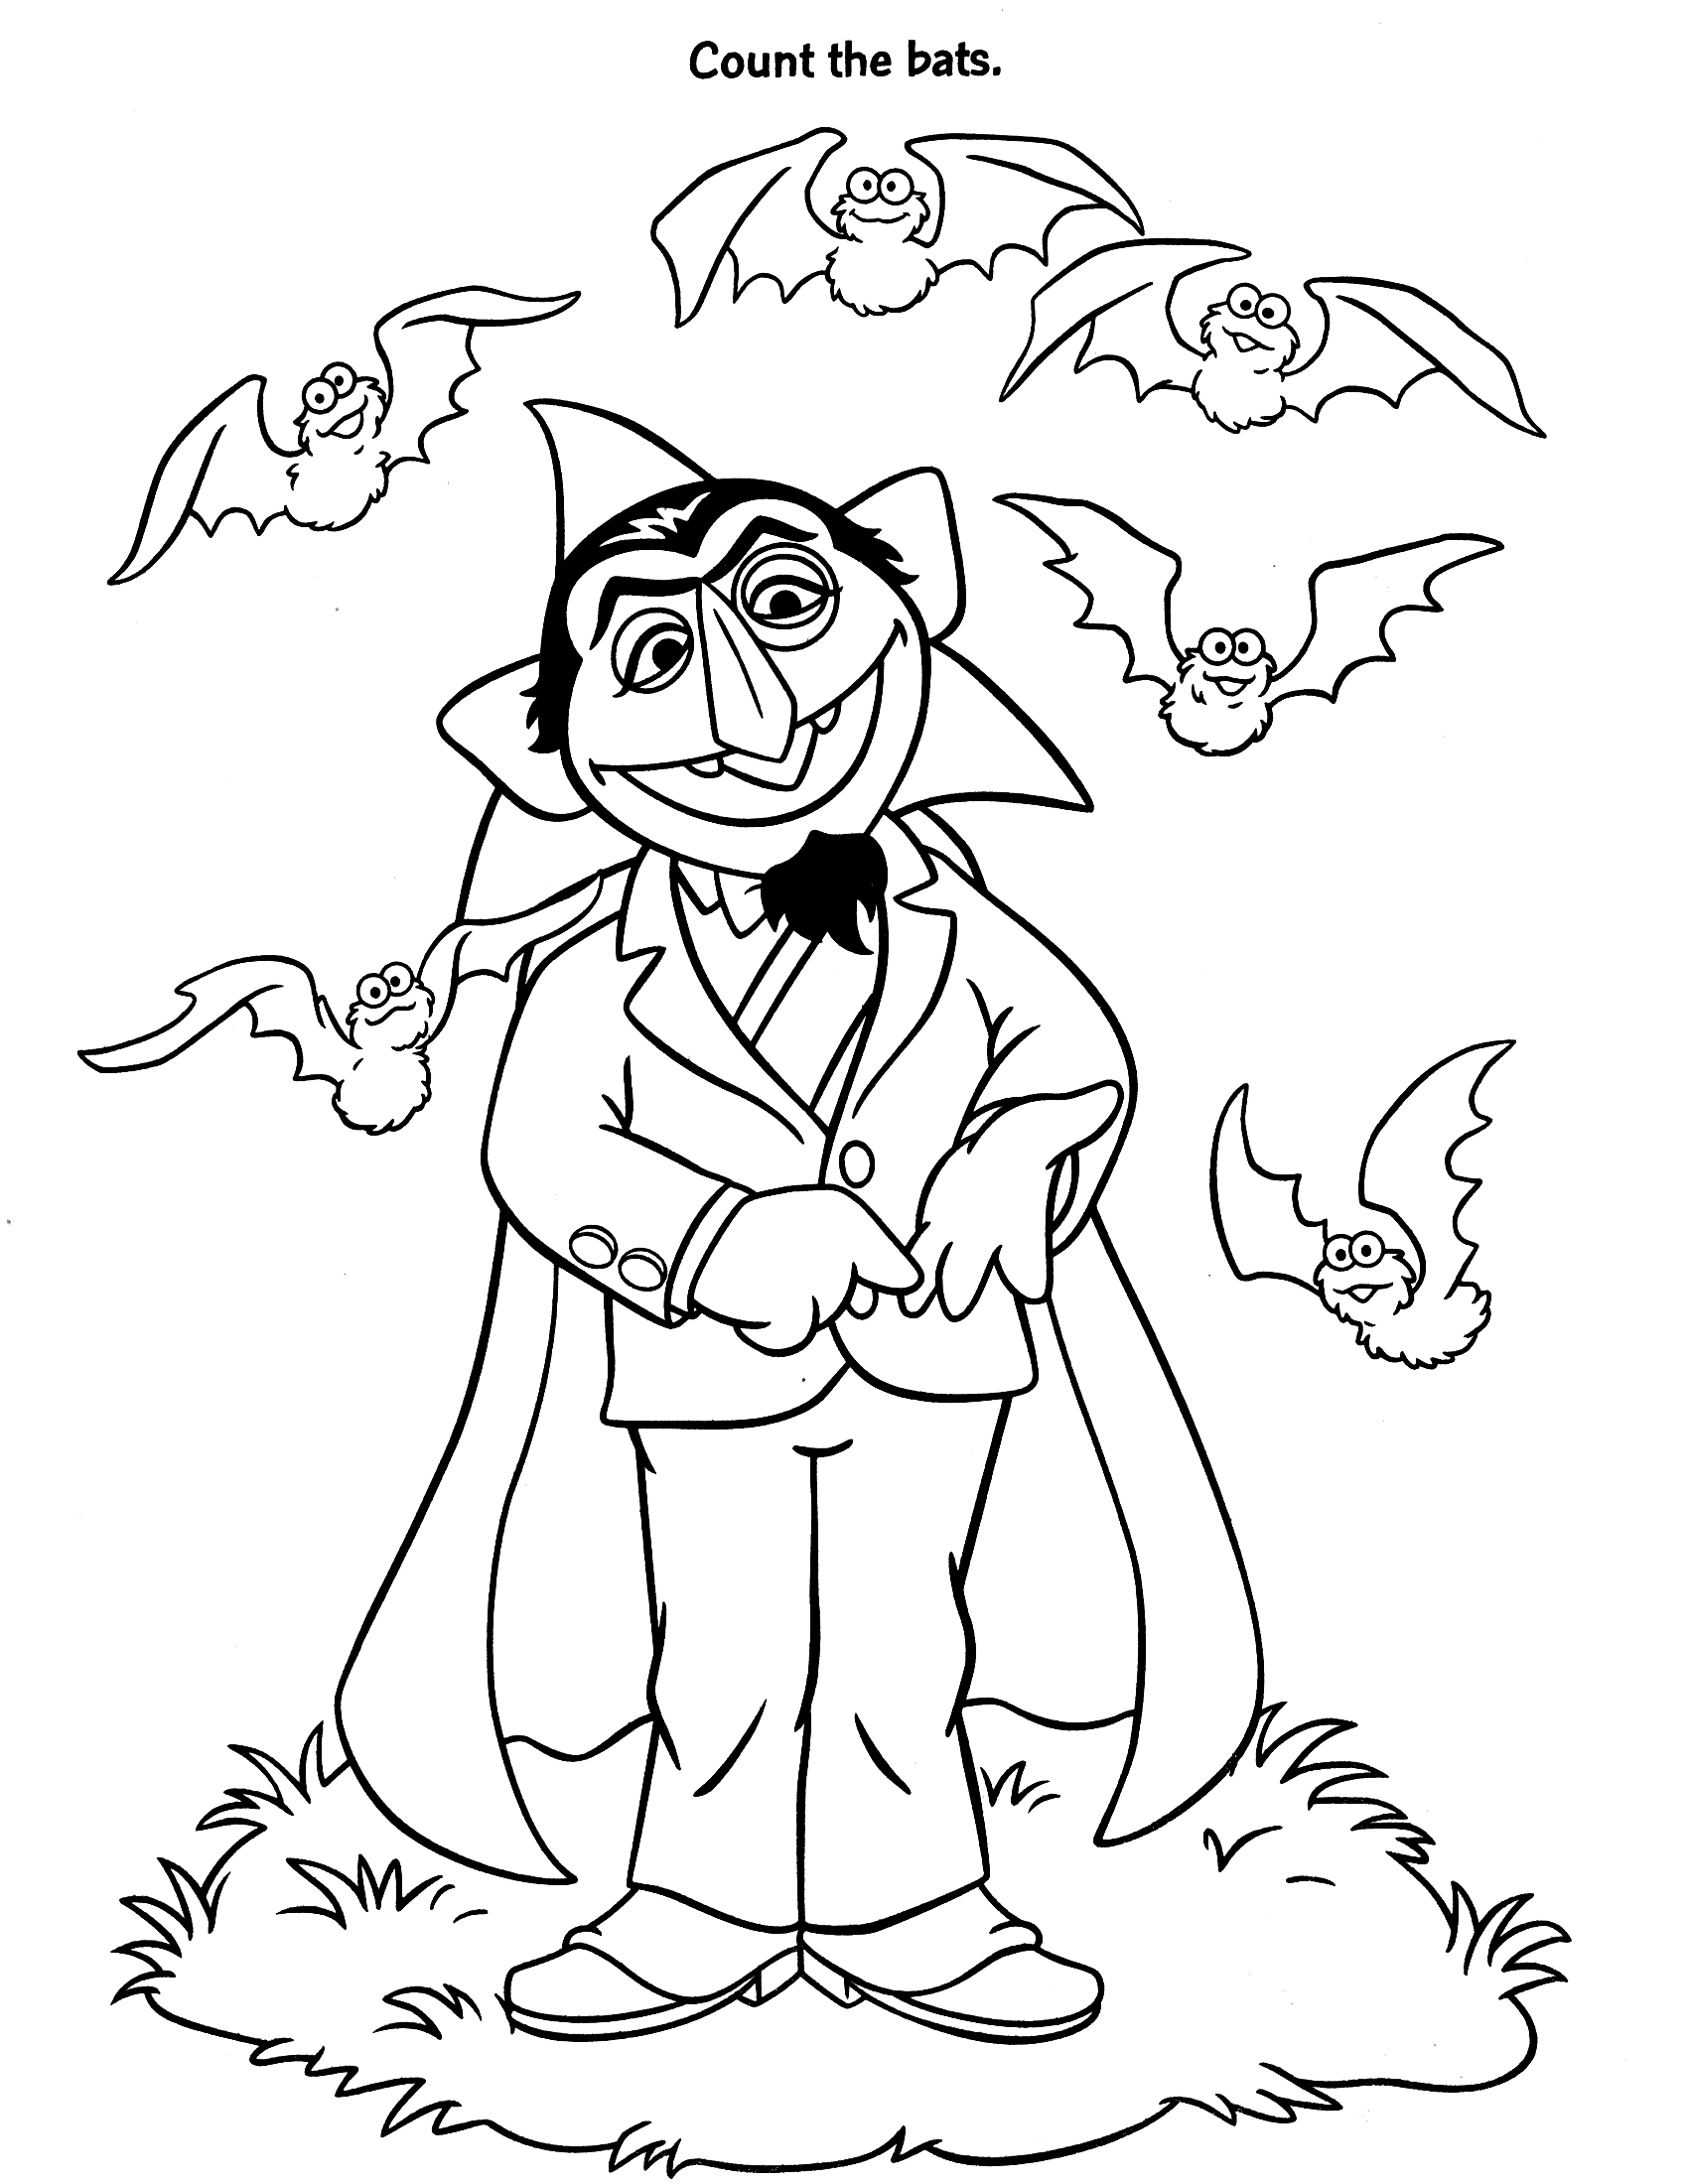 Count Von Count Coloring Pages Az Coloring Pages Counting Coloring Pages